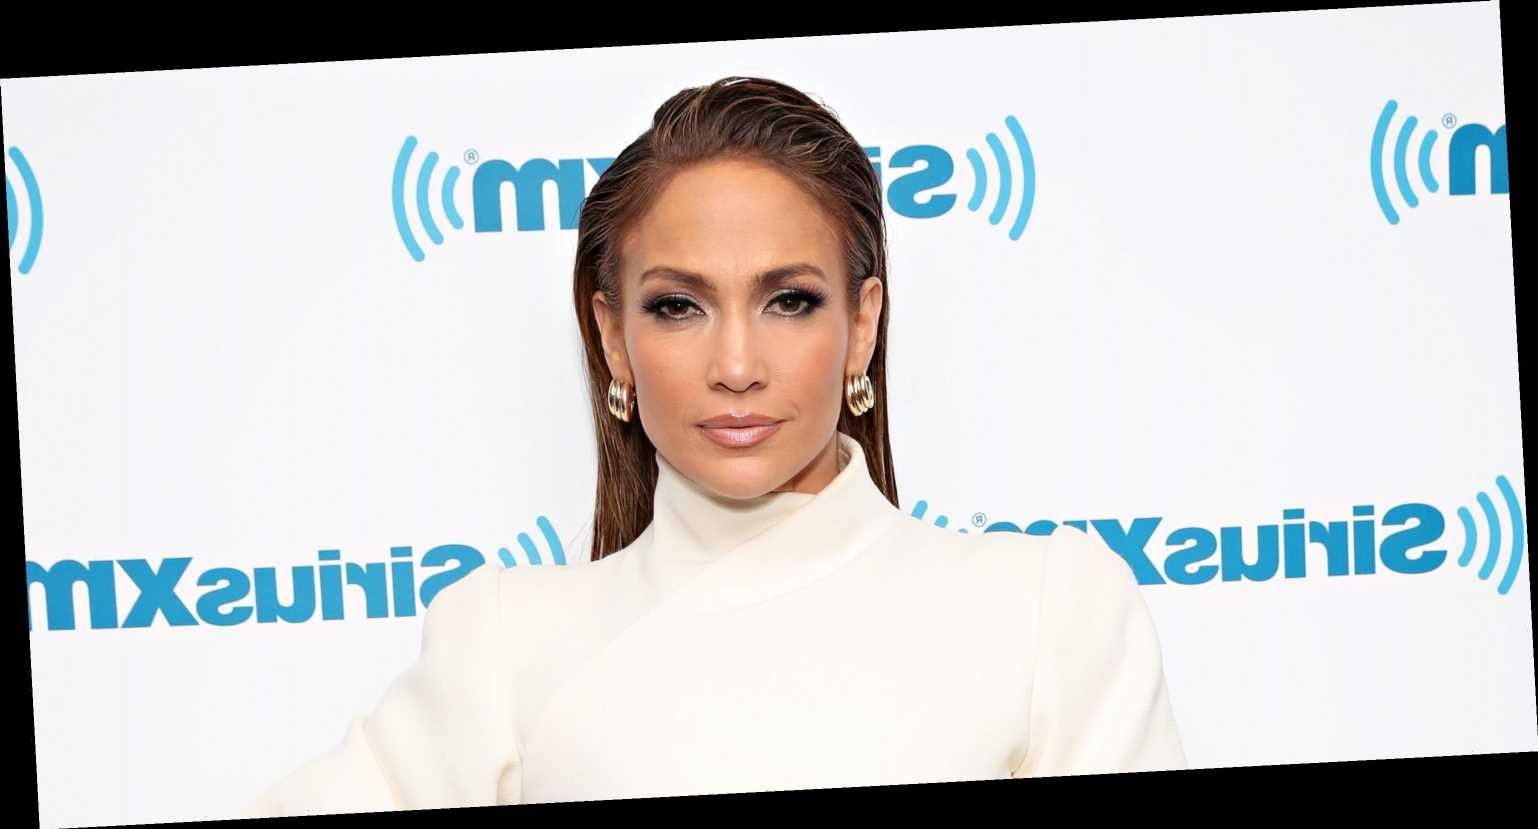 J.Lo Goes Makeup-Free While Dancing with Her Family in a TikTok Video